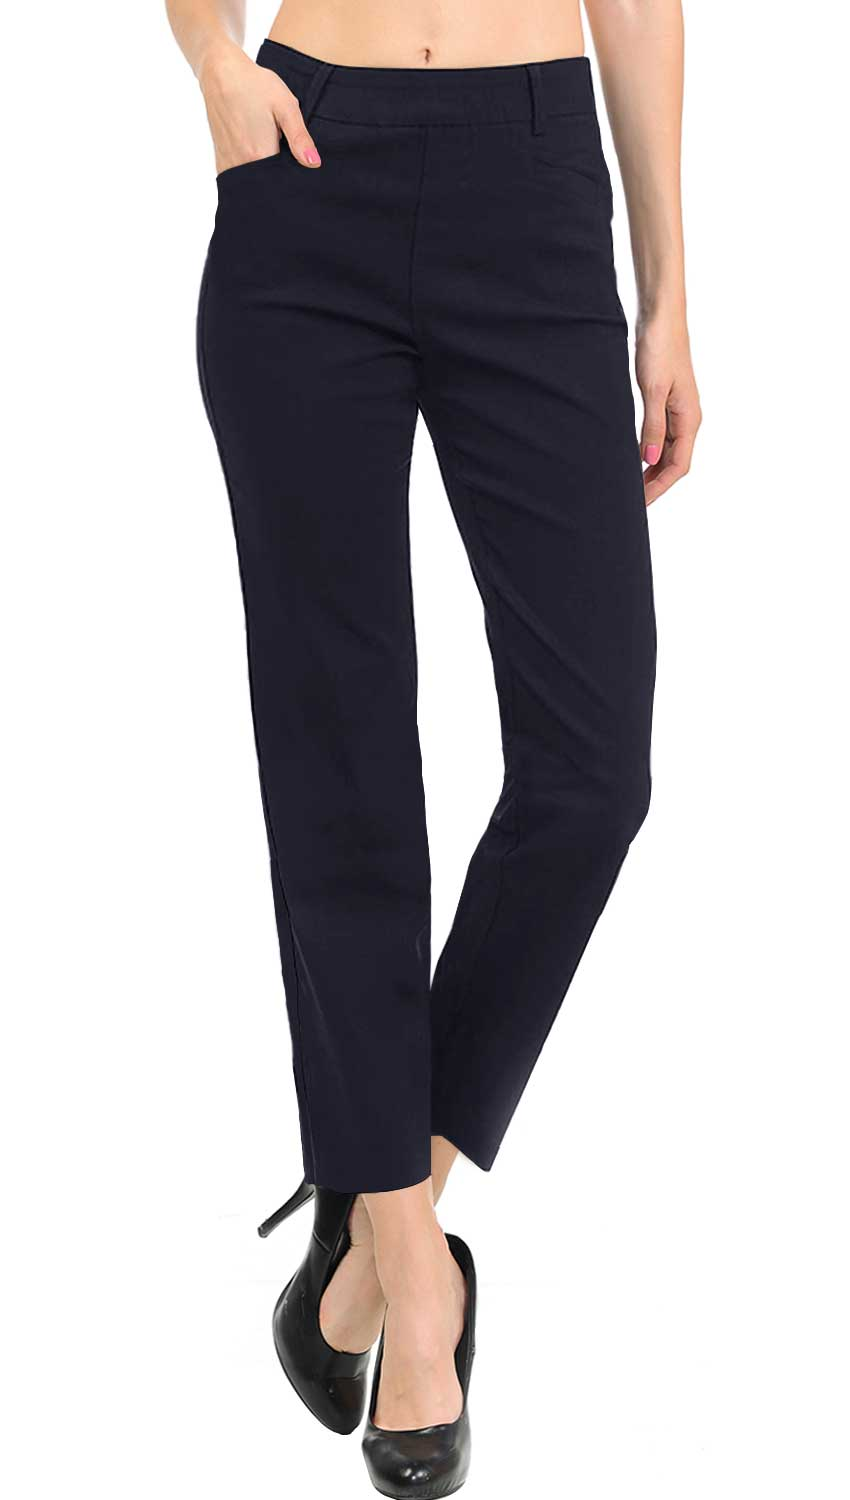 NEW Women's Straight Fit Trouser Ankle Pants